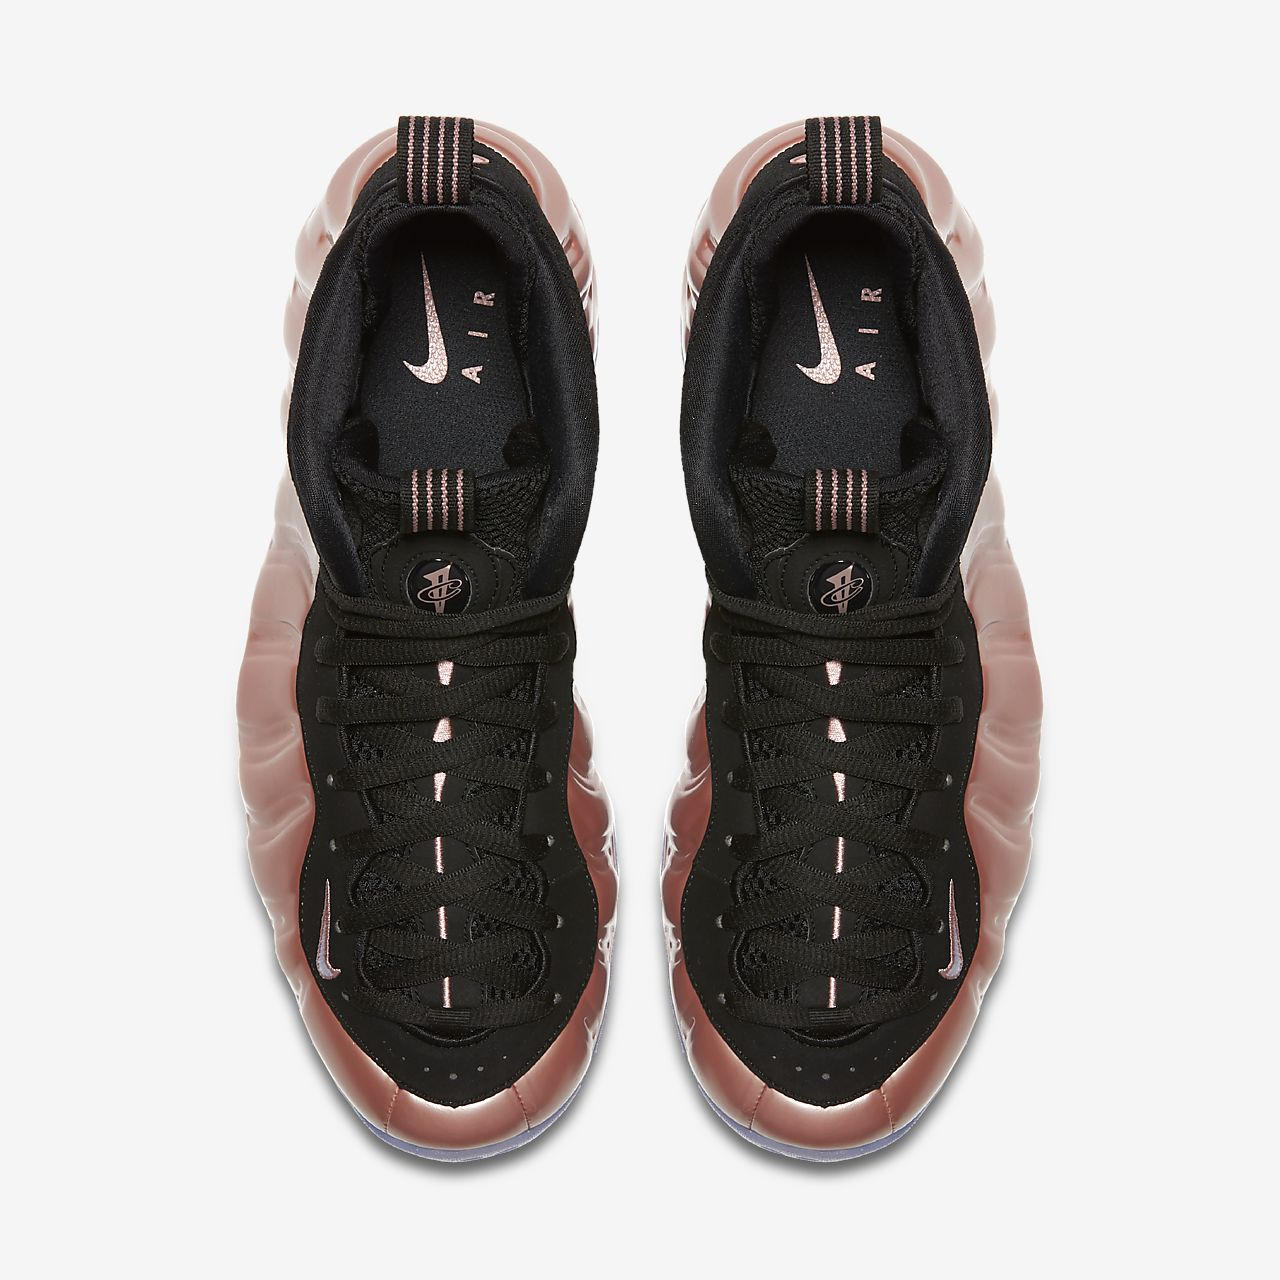 ... Chaussure Nike Air Foamposite One pour Homme